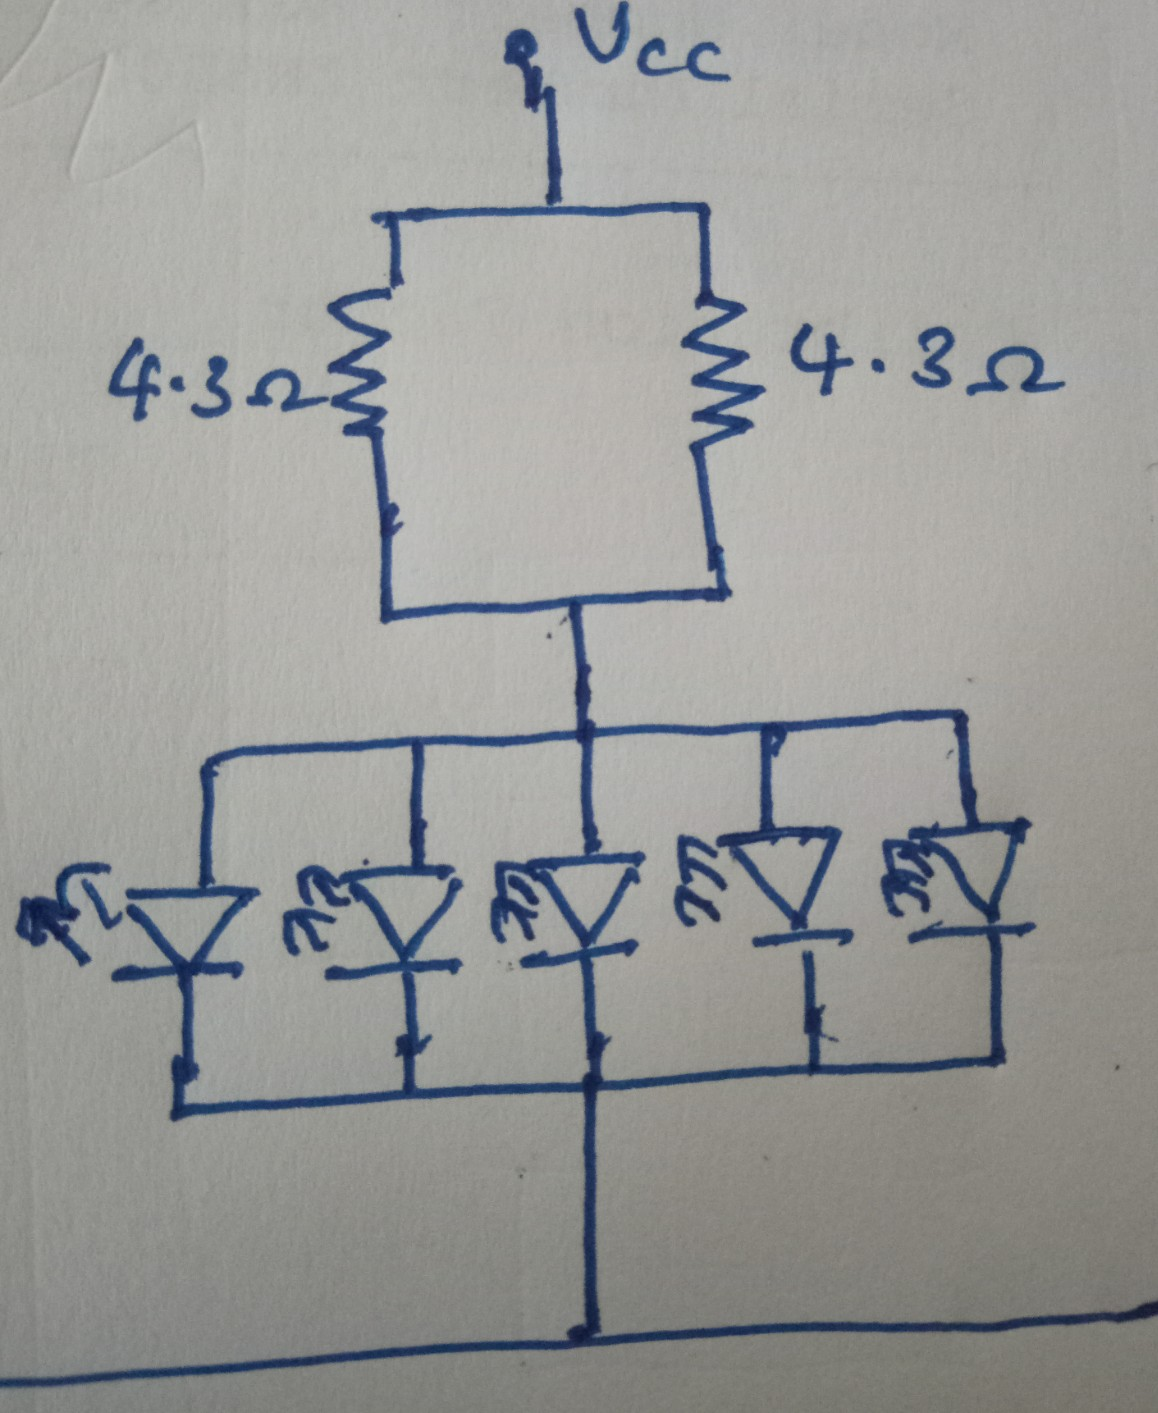 The Series Circuit Above Has Three Different Resistors